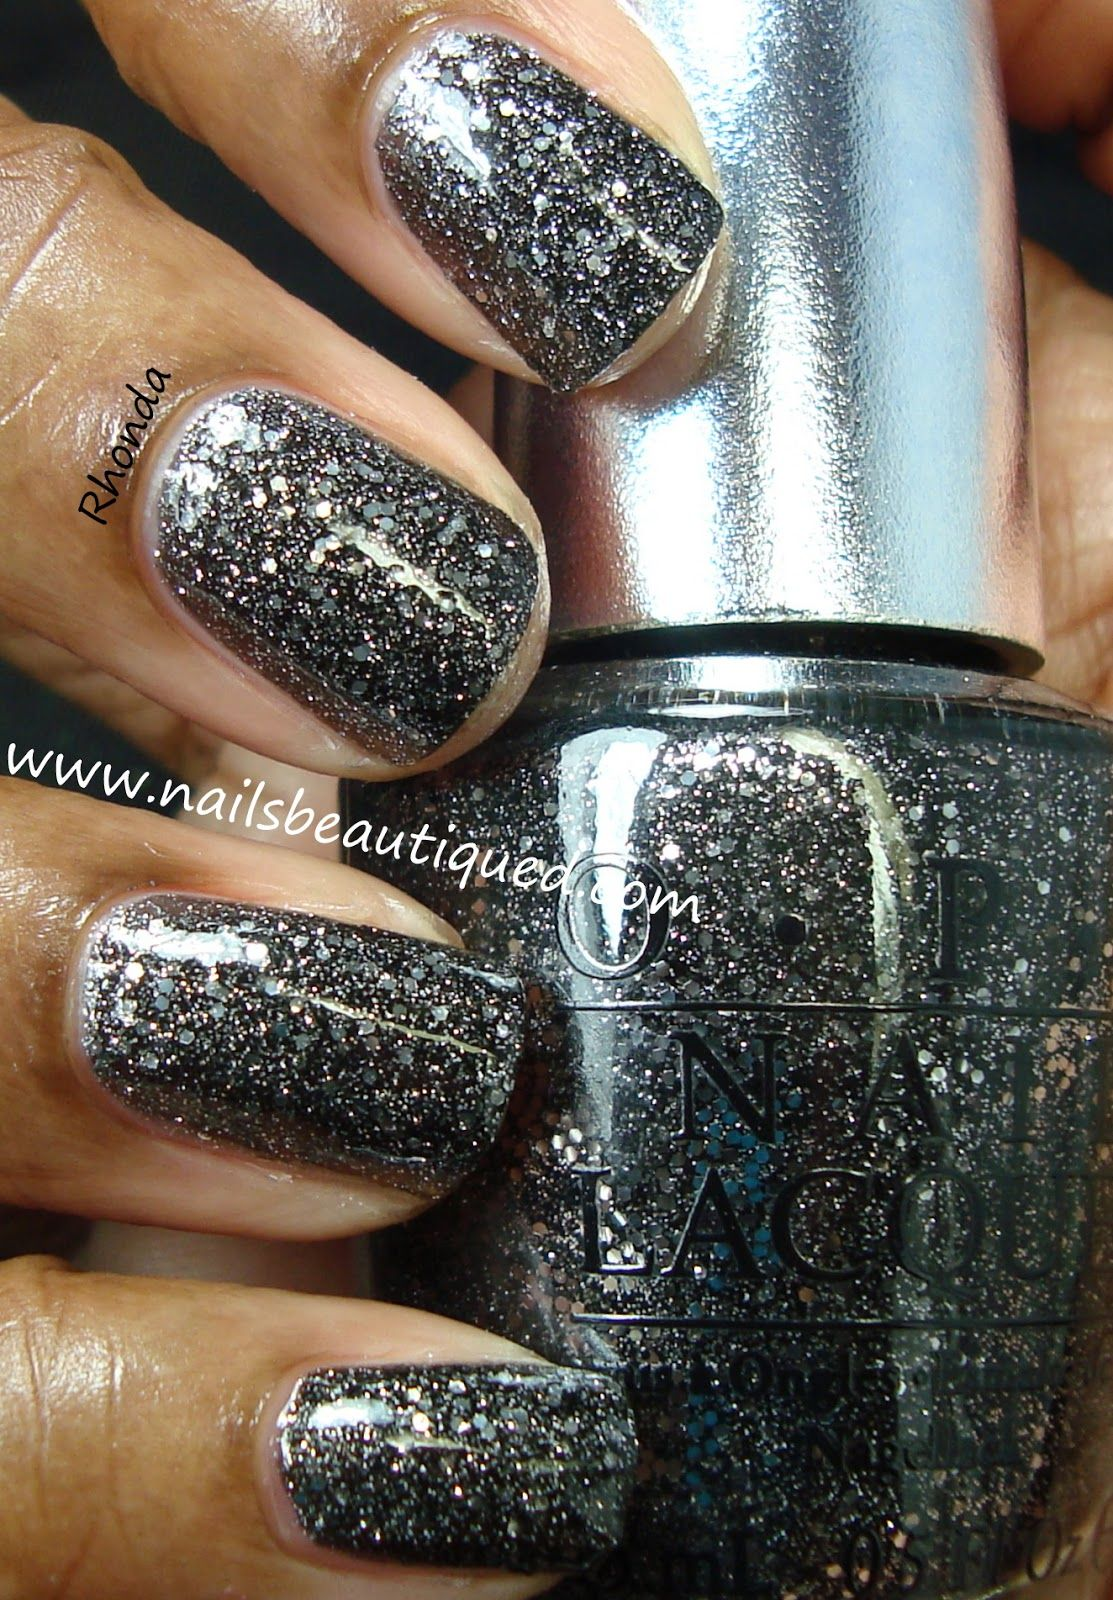 Opi New Designer Series Pewter And Lapis Swatches And Review Nails Beautiqued Opi Nail